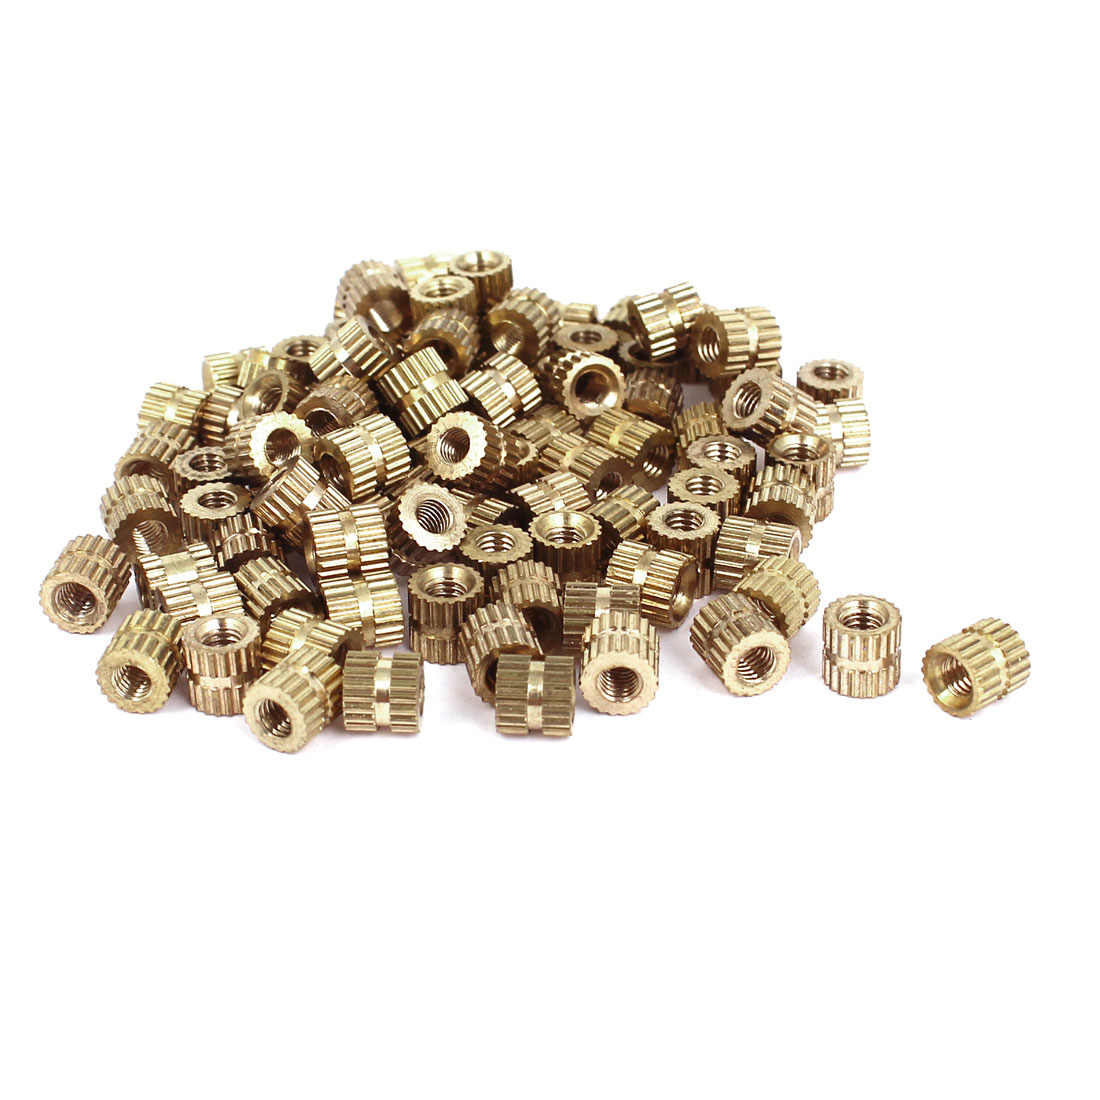 100 Pcs M3x5mm(L)-5mm(OD) Metric Threaded Brass Knurl Round Insert Nuts